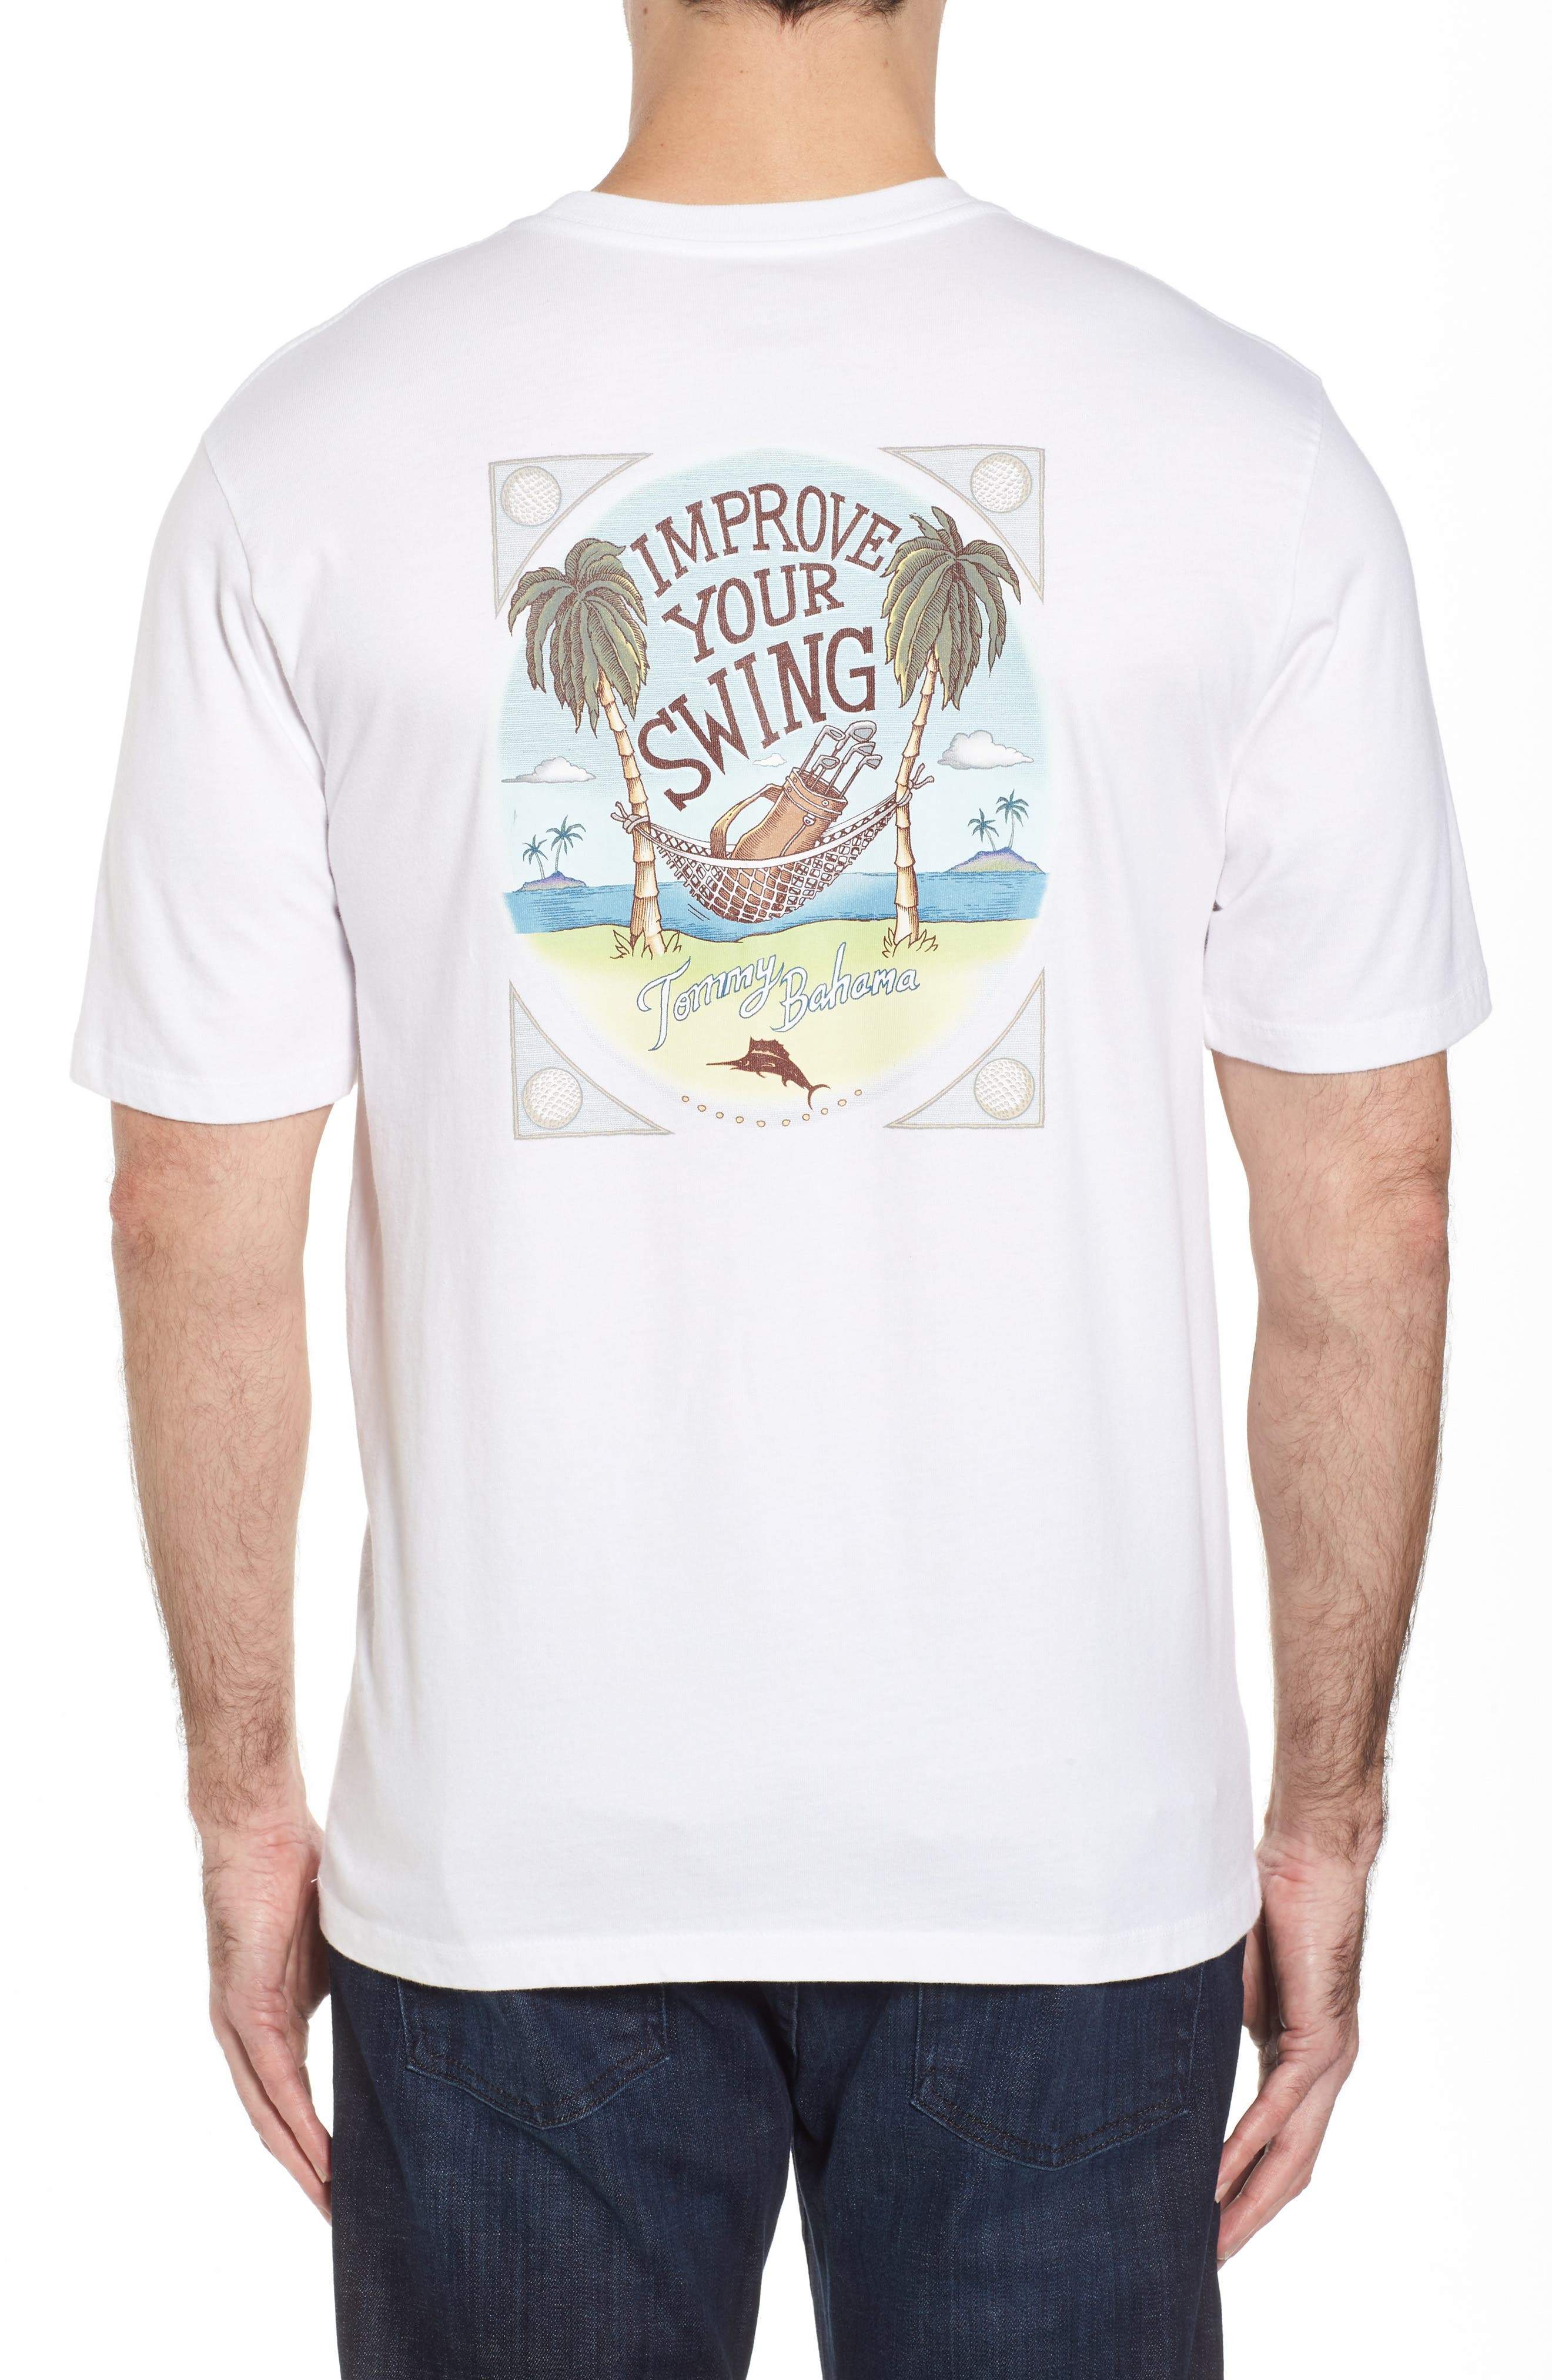 Tommy Bahama Improve Your Swing T-Shirt